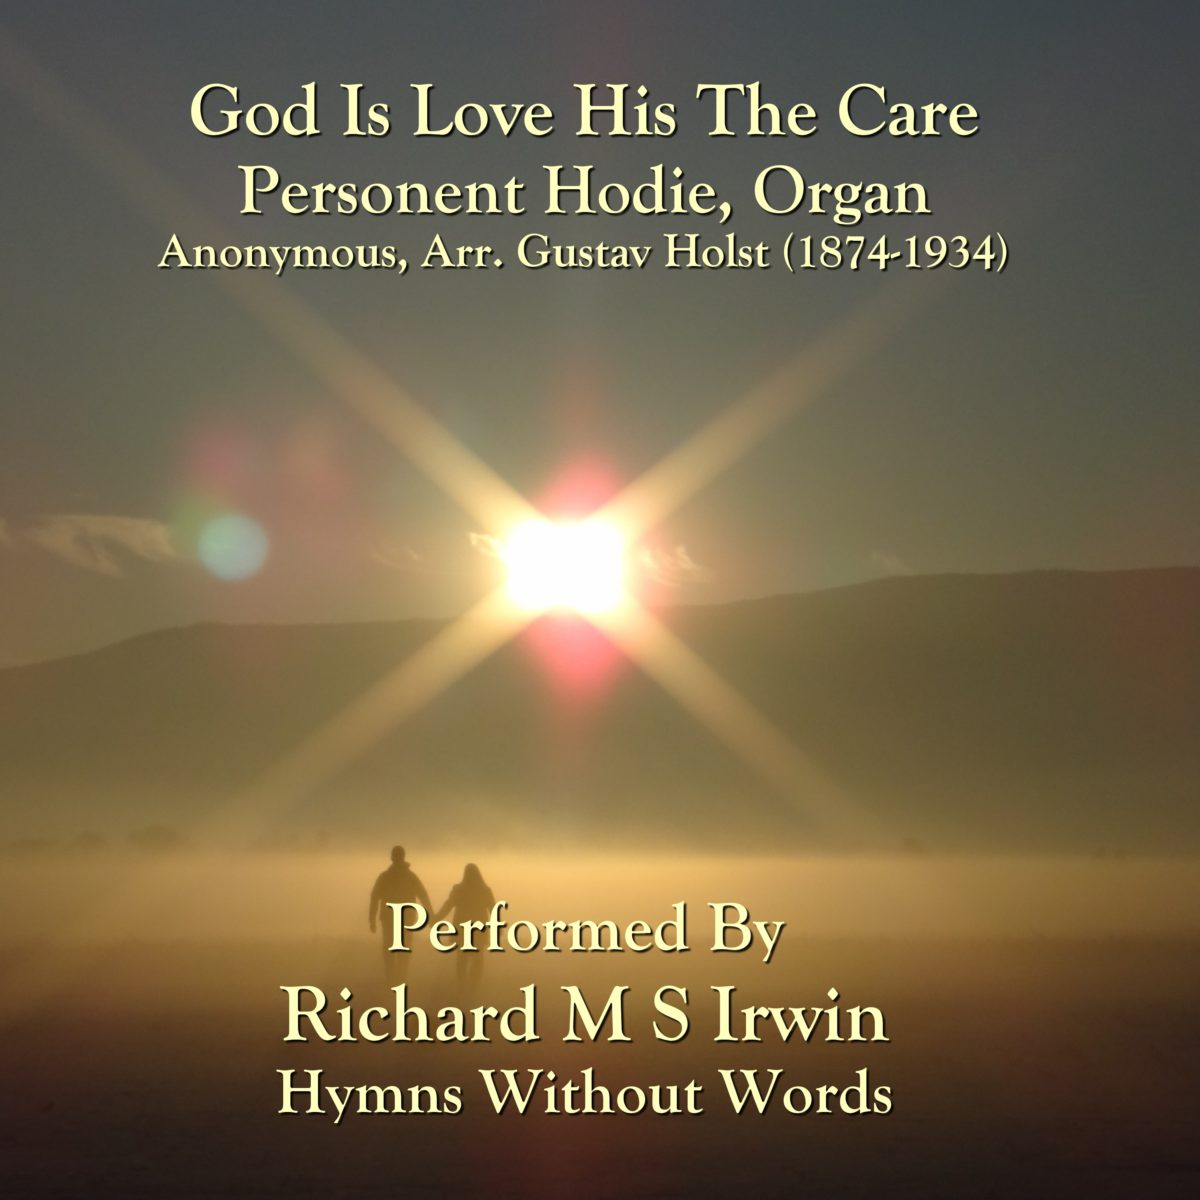 God Is Love His The Care (Personent Hodie, Organ, 4 Verses)